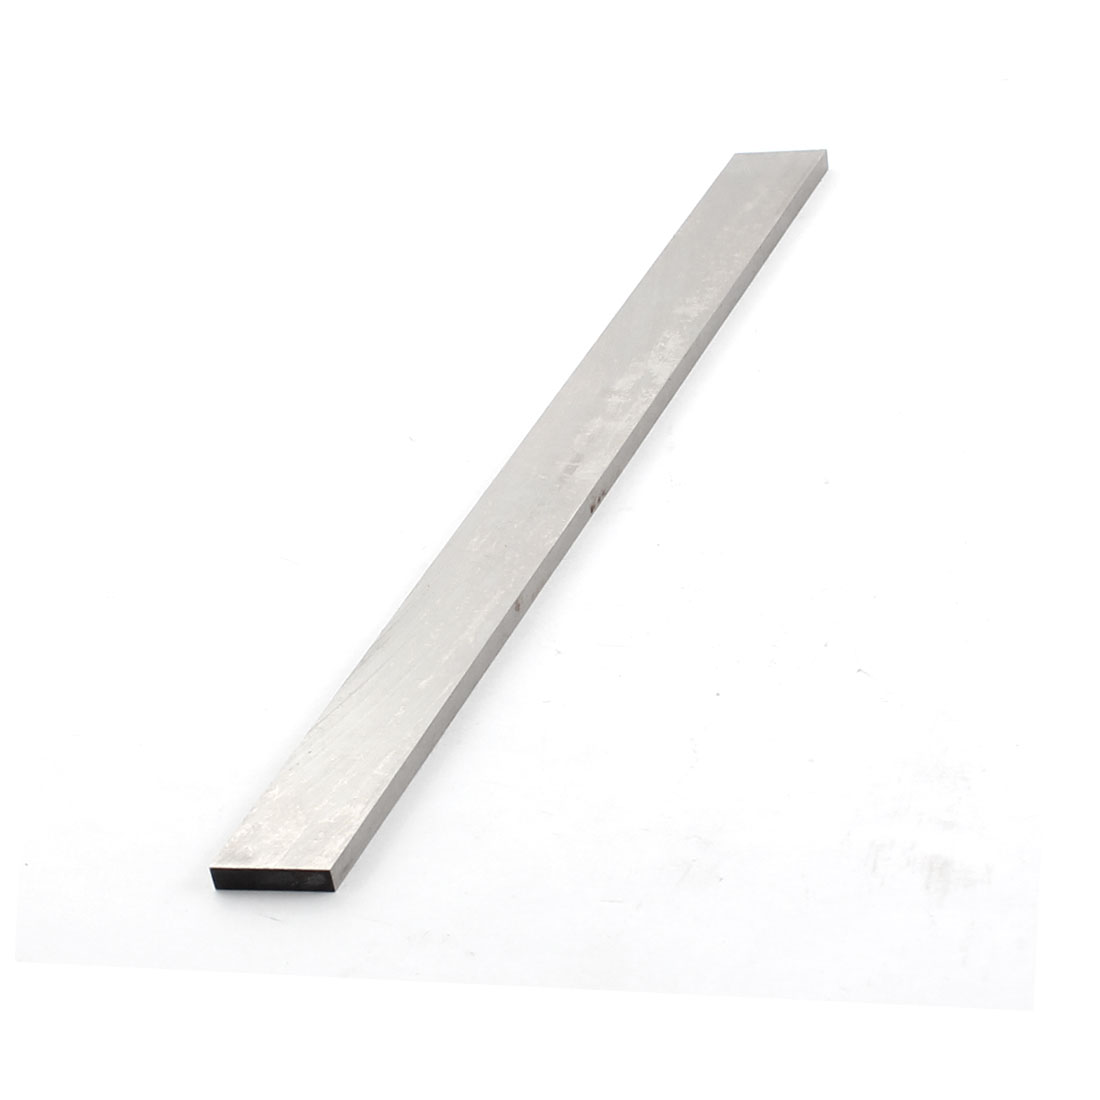 Parallelogram Silver Tone High Speed Steel Parting Turning Milling Lathe Tool Bit 4mm x 16mm x 200mm